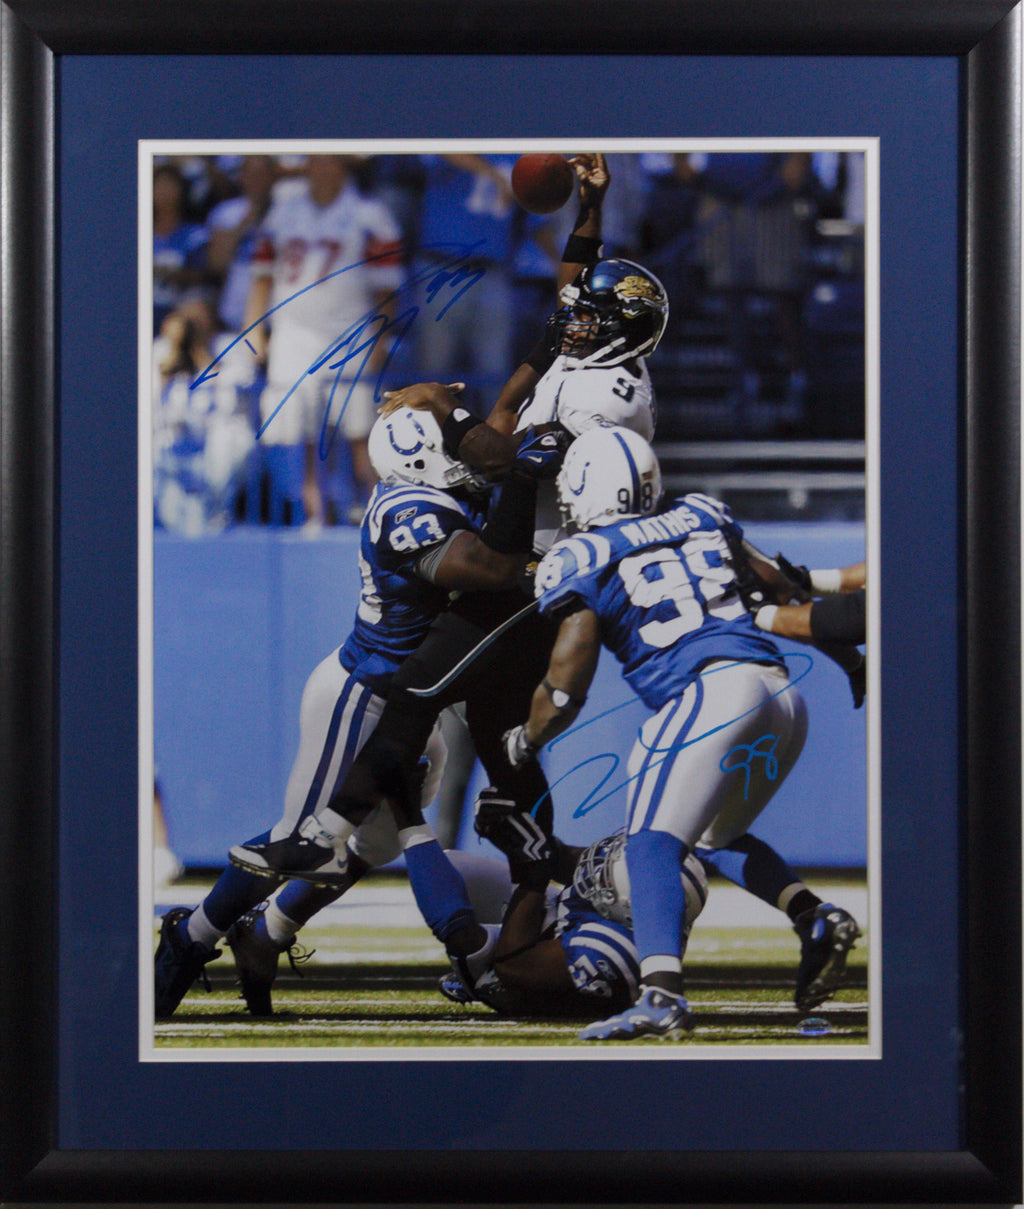 Robert Mathis Autographed 16x20 W/ Dwight Freeney